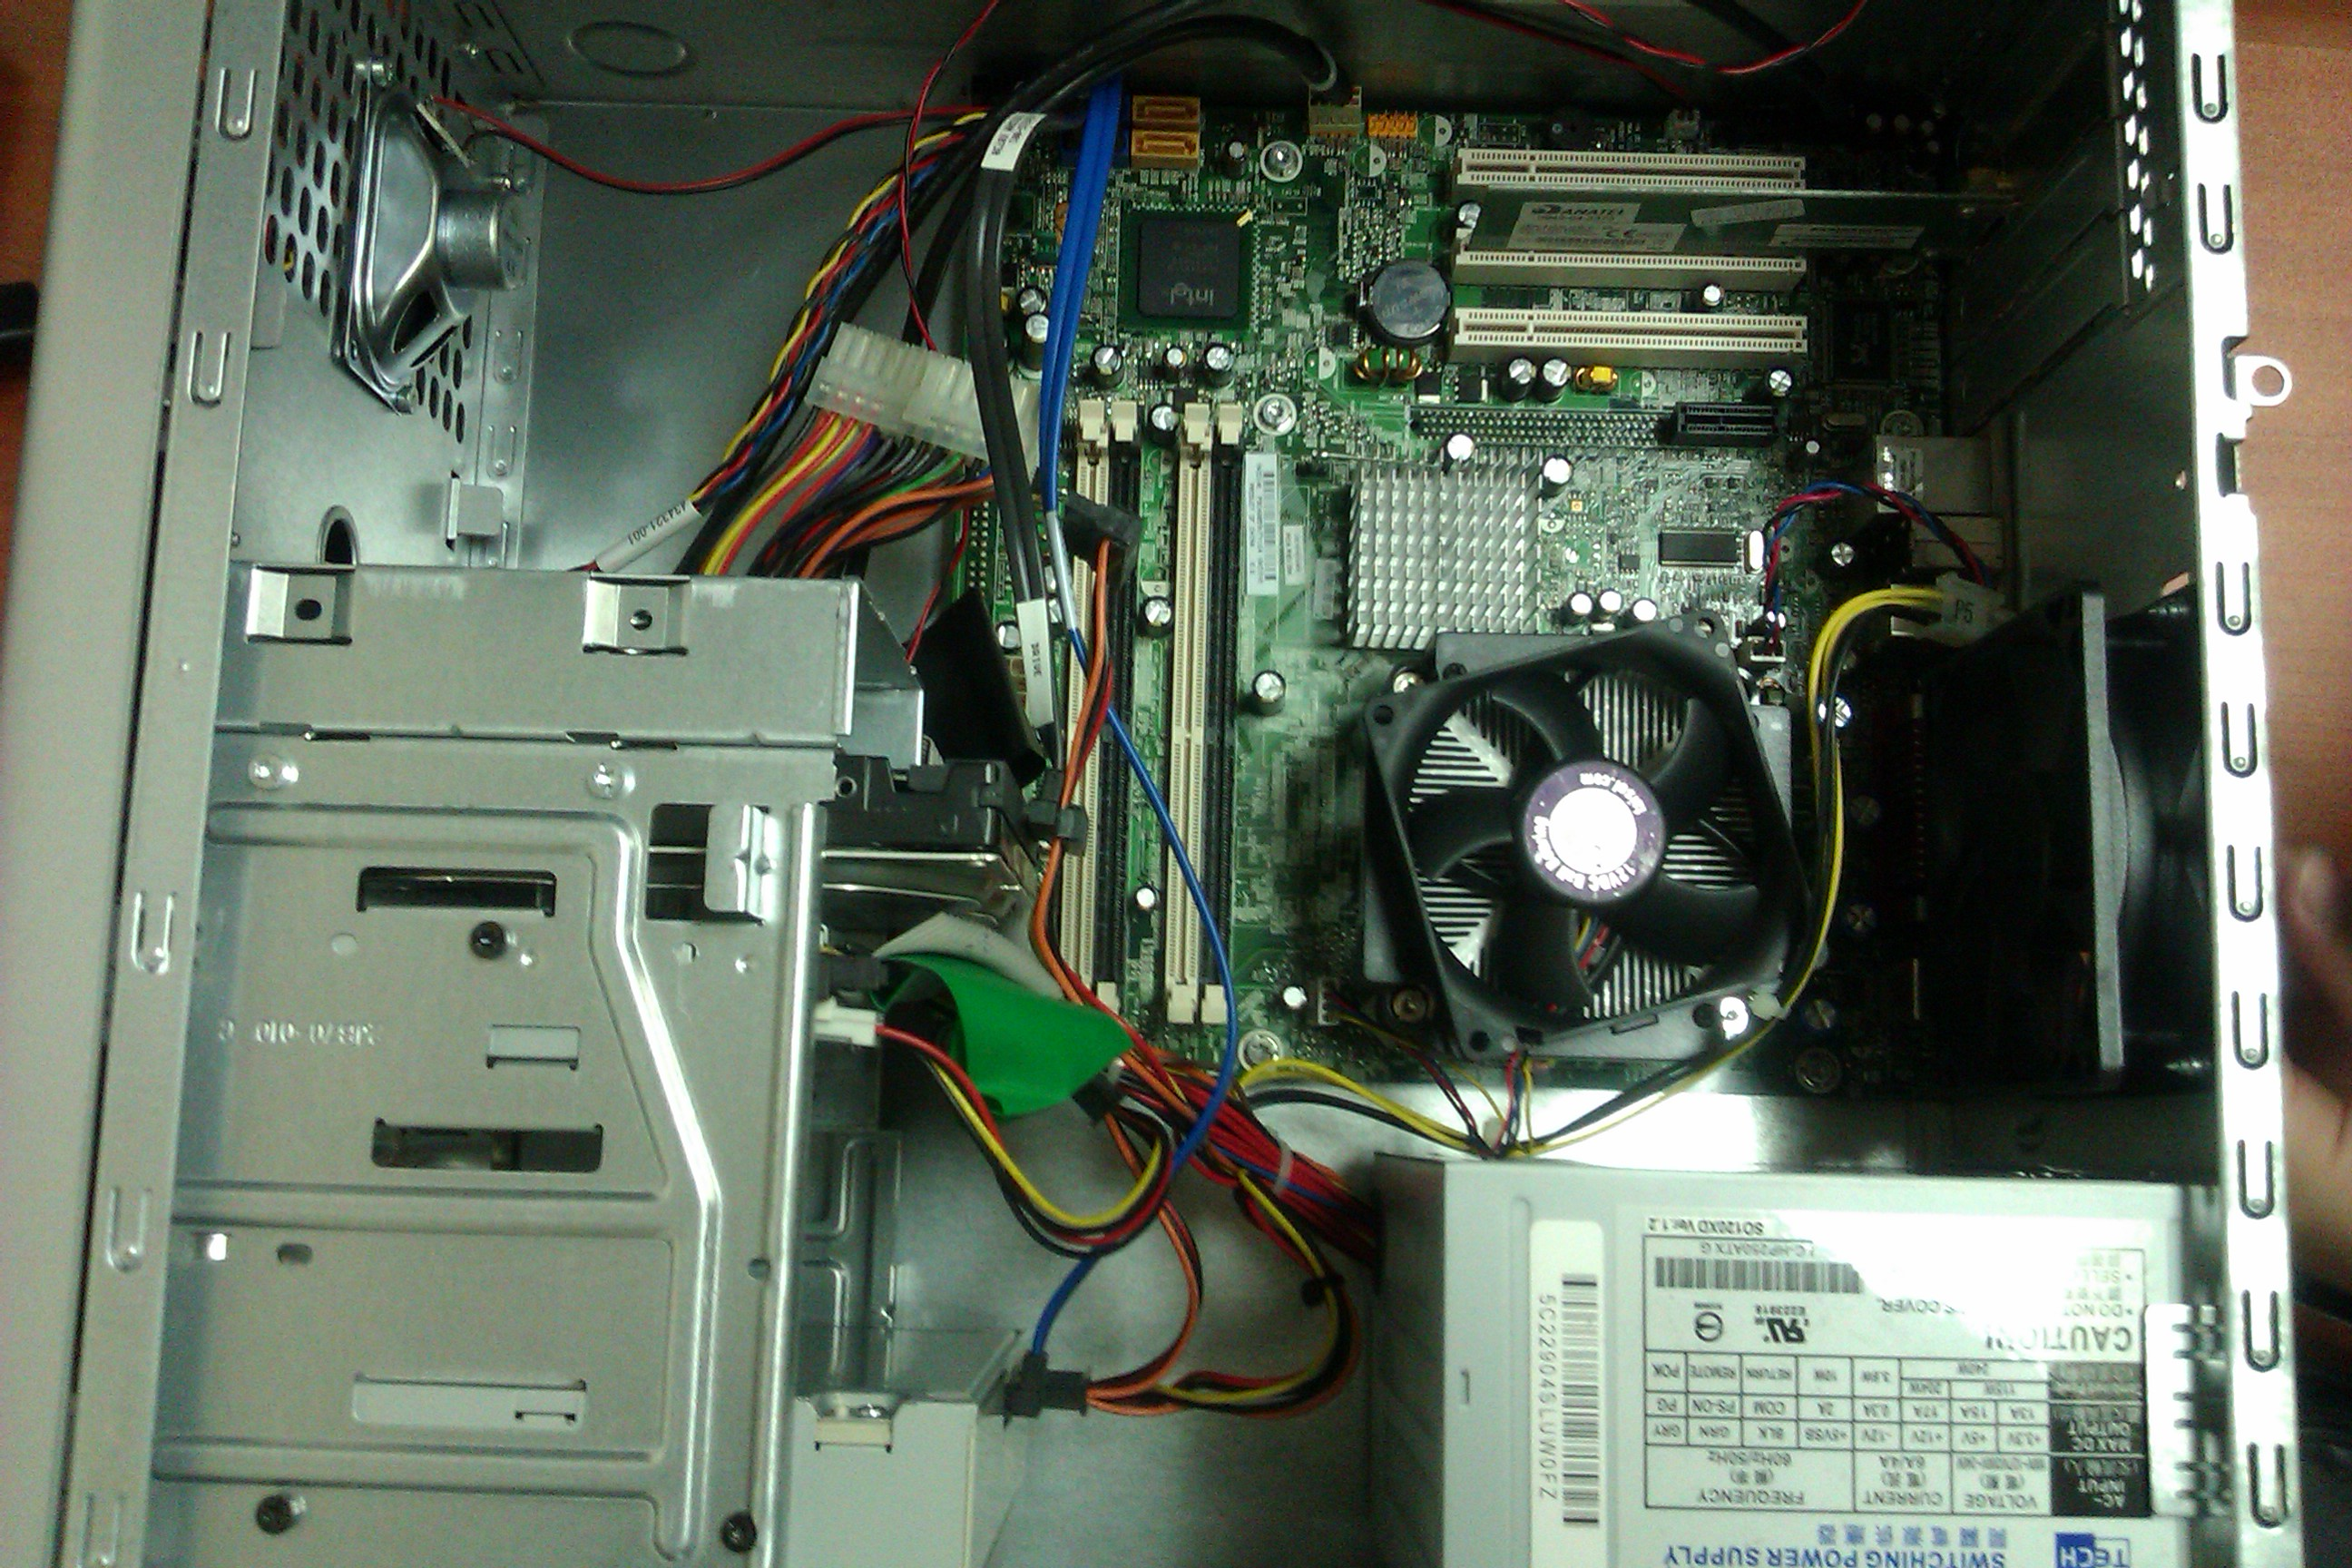 disassemble%20desktop%2012.jpg